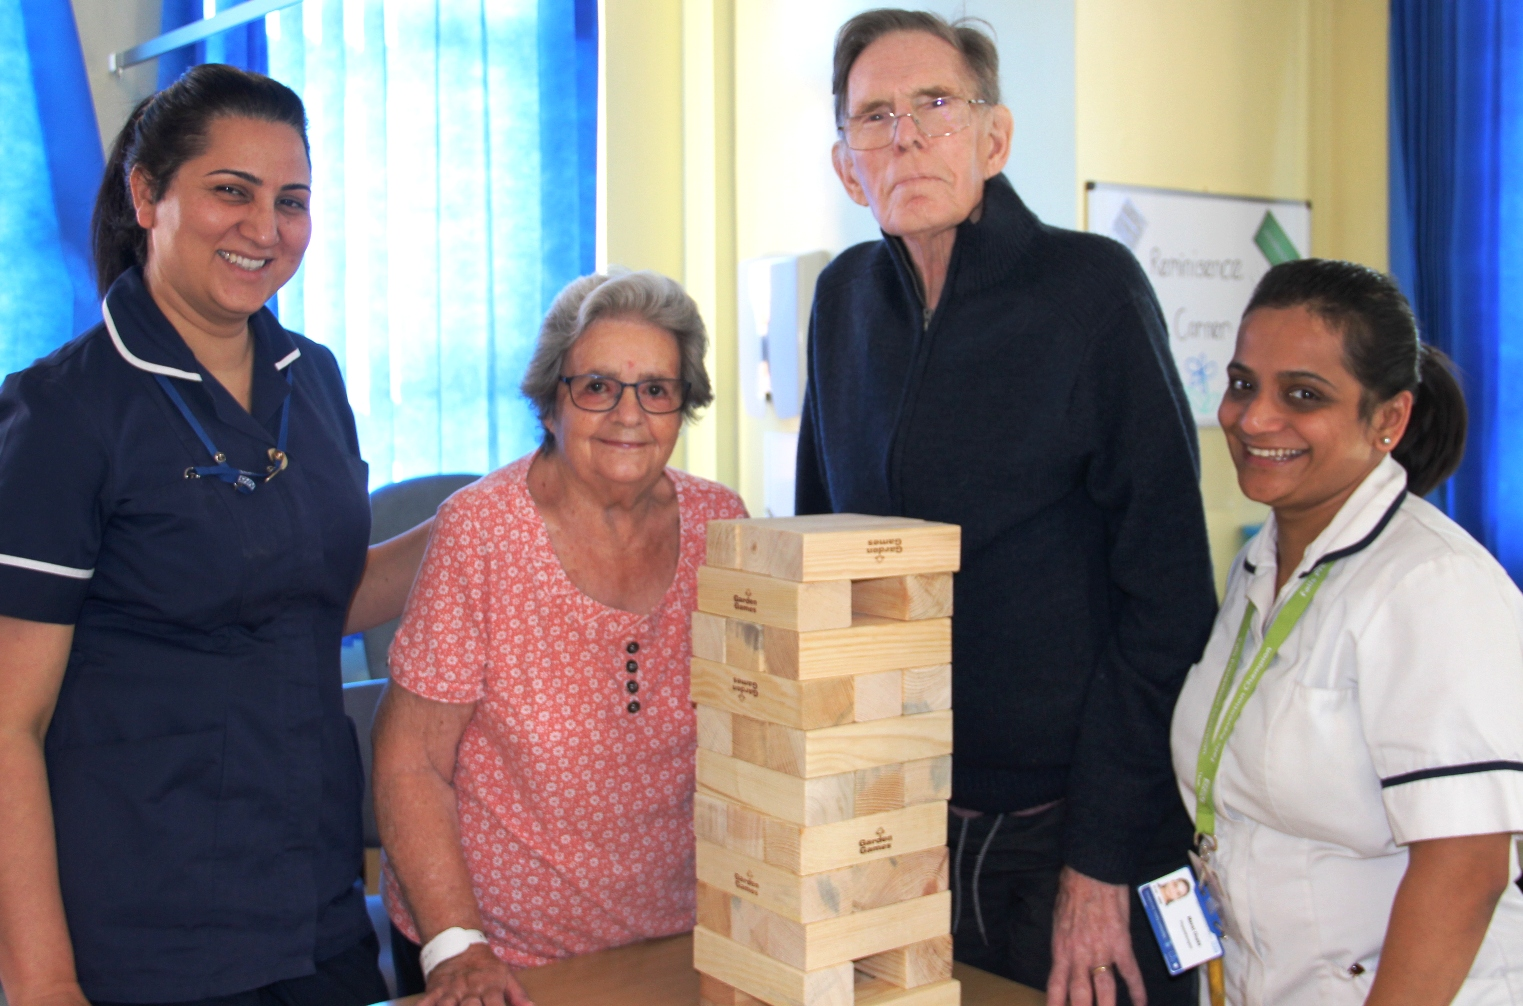 In the pictures: Ward Sister Kiran Dhillon, patients Eunice Webb and David Emmett and Physiotherapist Mansi Gupta playing Jenga.